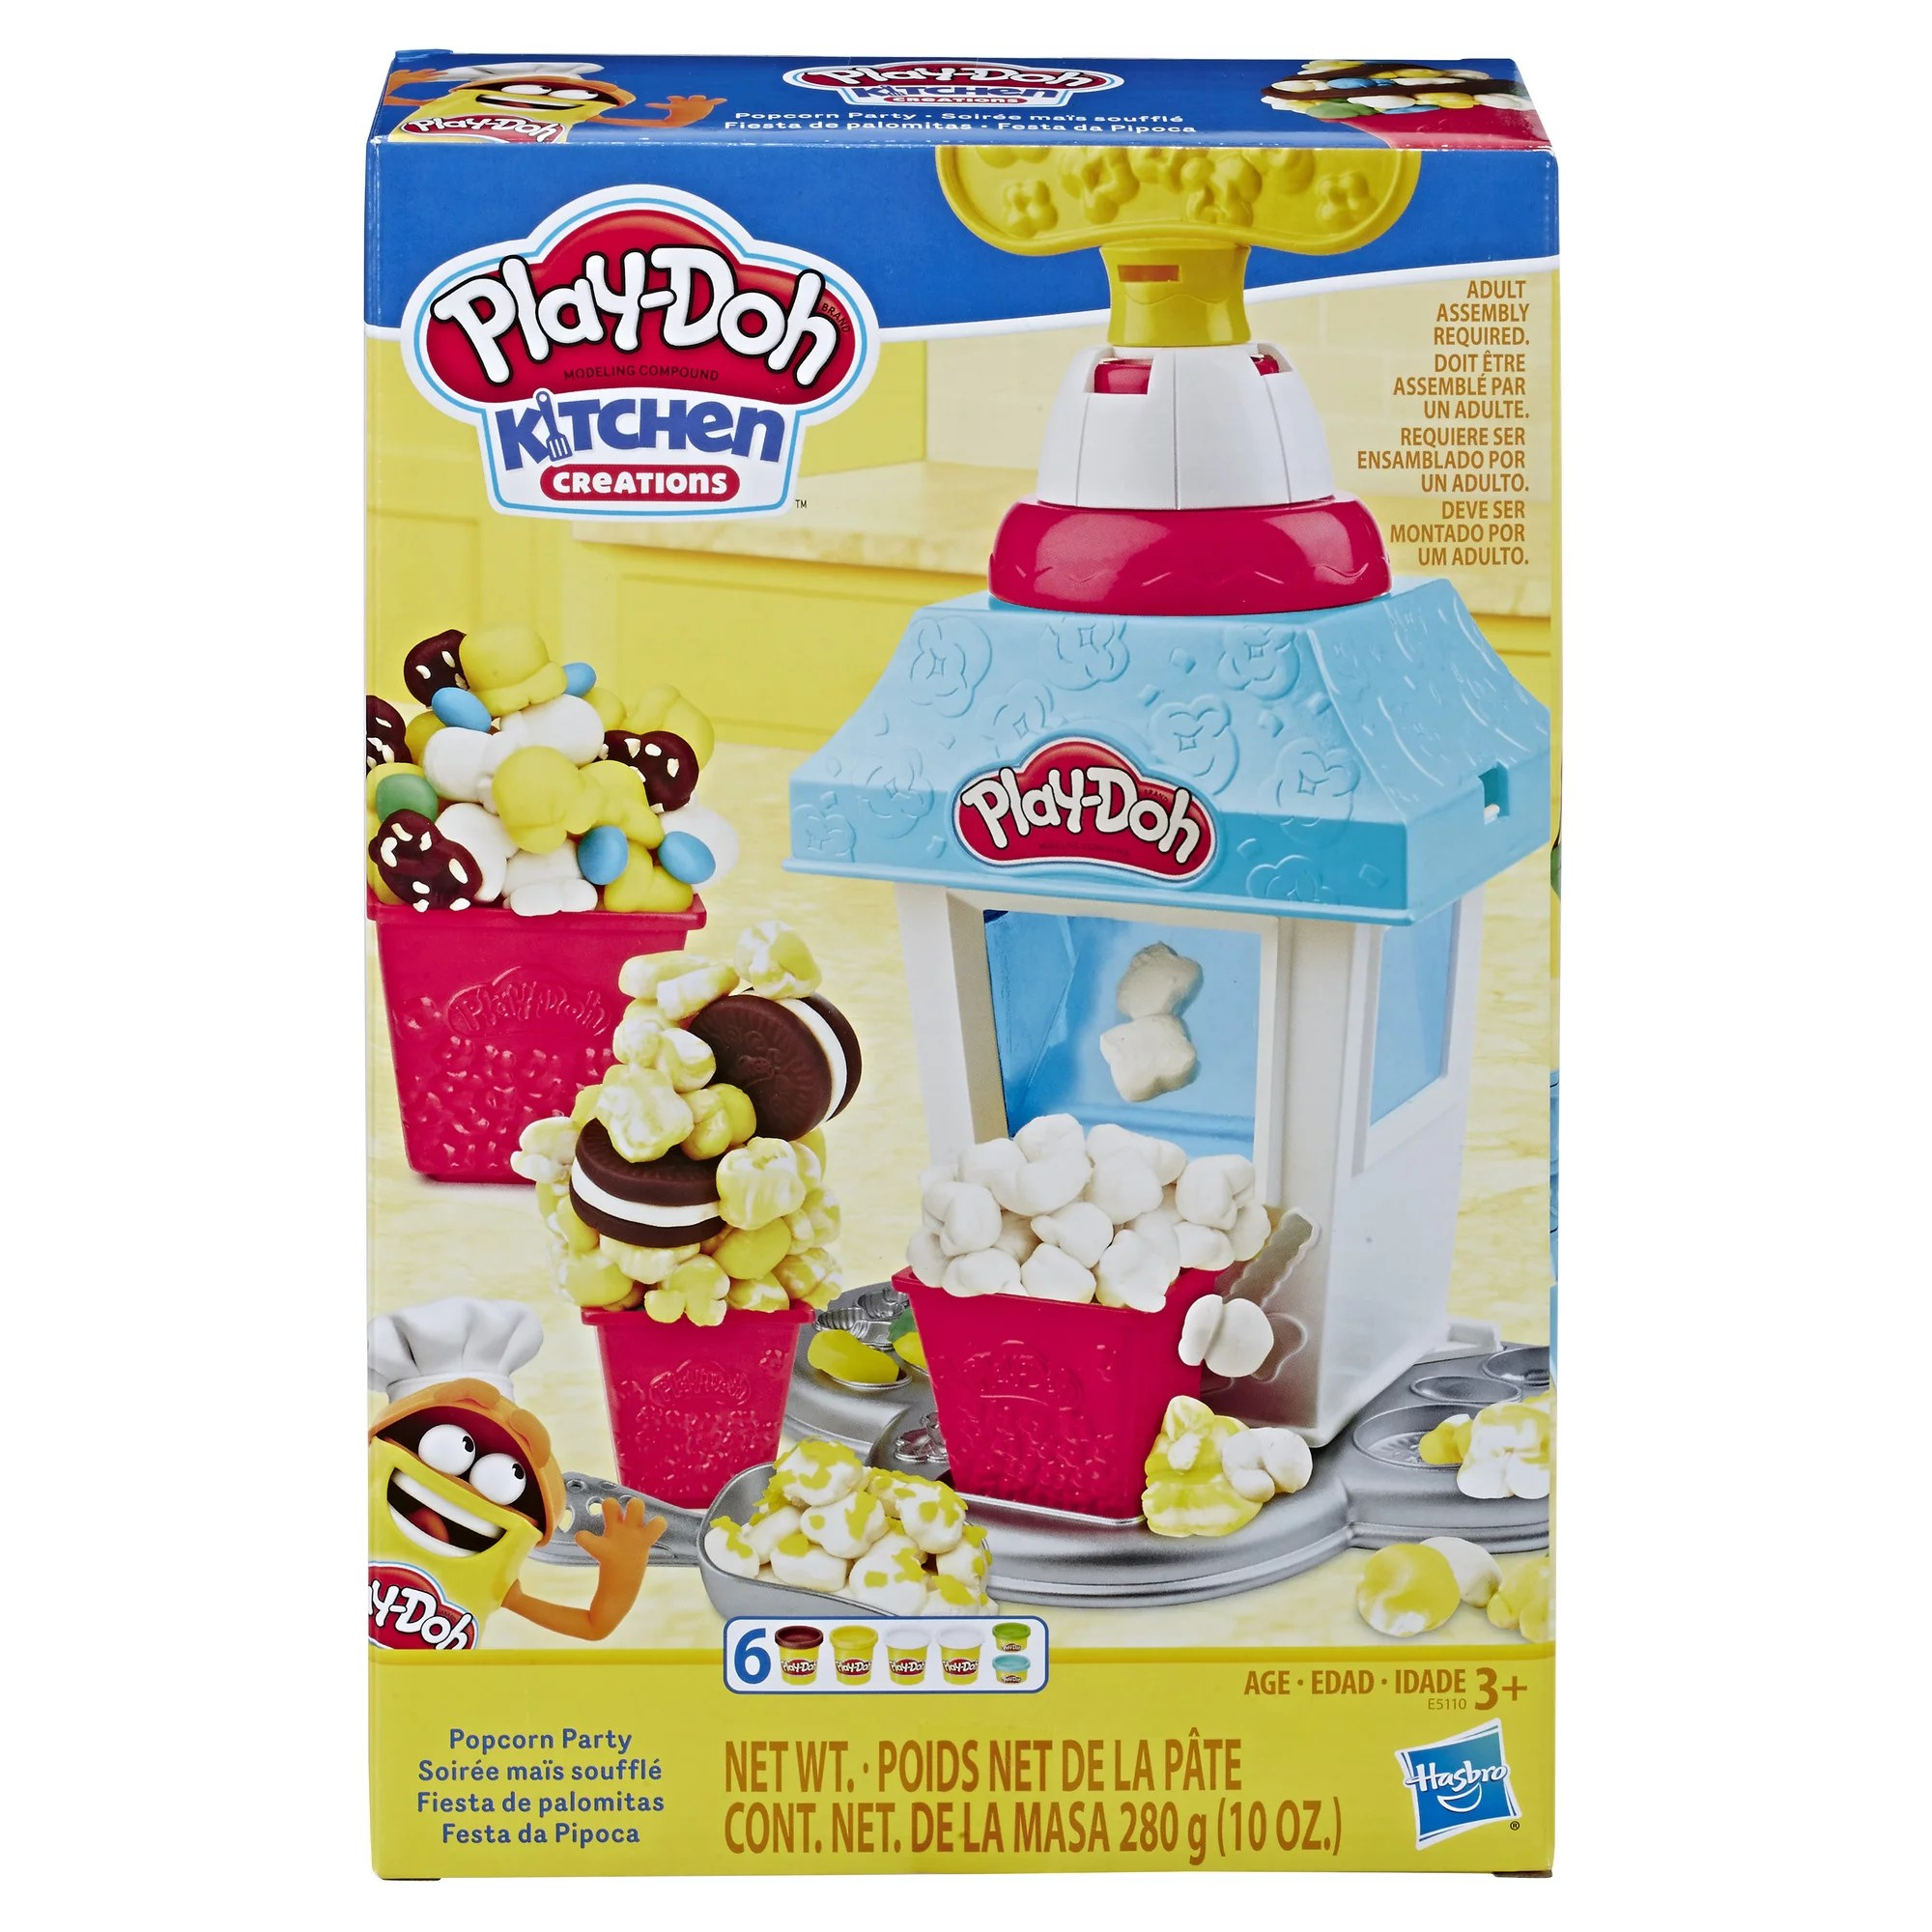 Play Doh Kitchen Creations Popcorn Party Play Food Set With 6 Cans Walmart Com